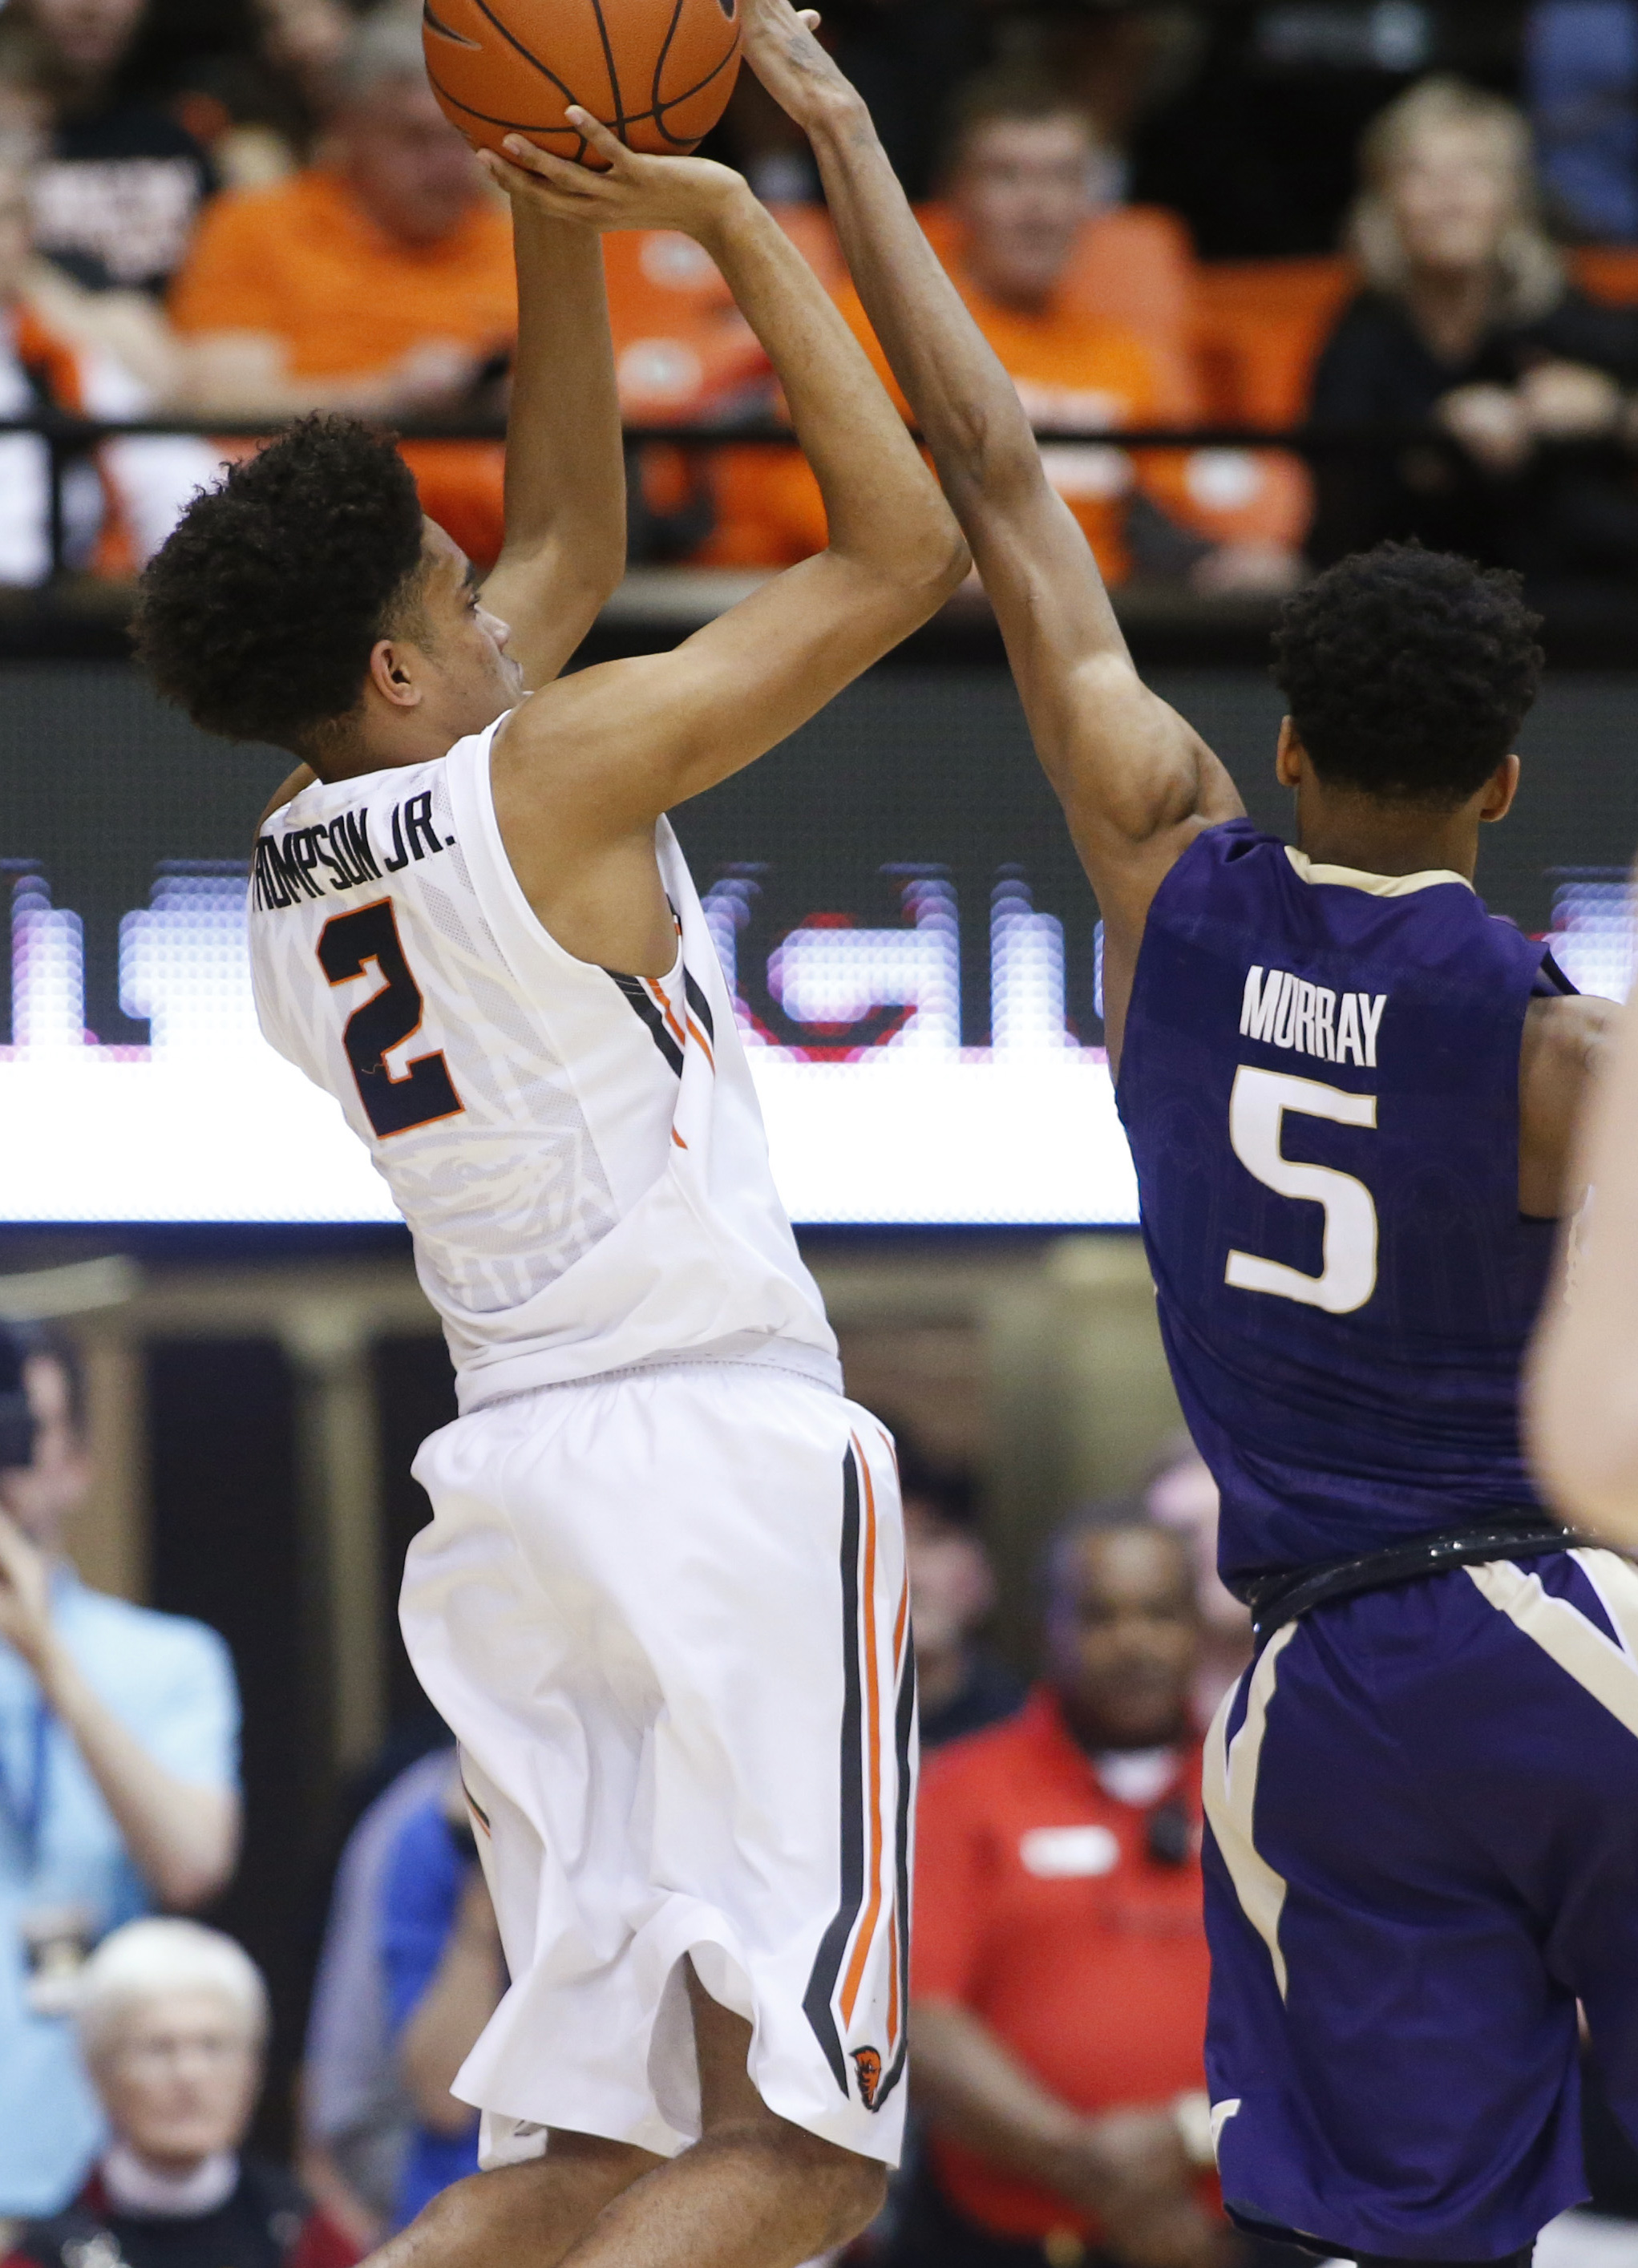 Oregon State's Stephen Thompson Jr., left, shoots a 3-pointer over Washington's Dejounte Murray at the end of an NCAA college basketball game in Corvallis, Ore., on Wednesday, Feb. 24, 2016. Thompson made the shot, giving Oregon State a 82-81 win. (AP Pho